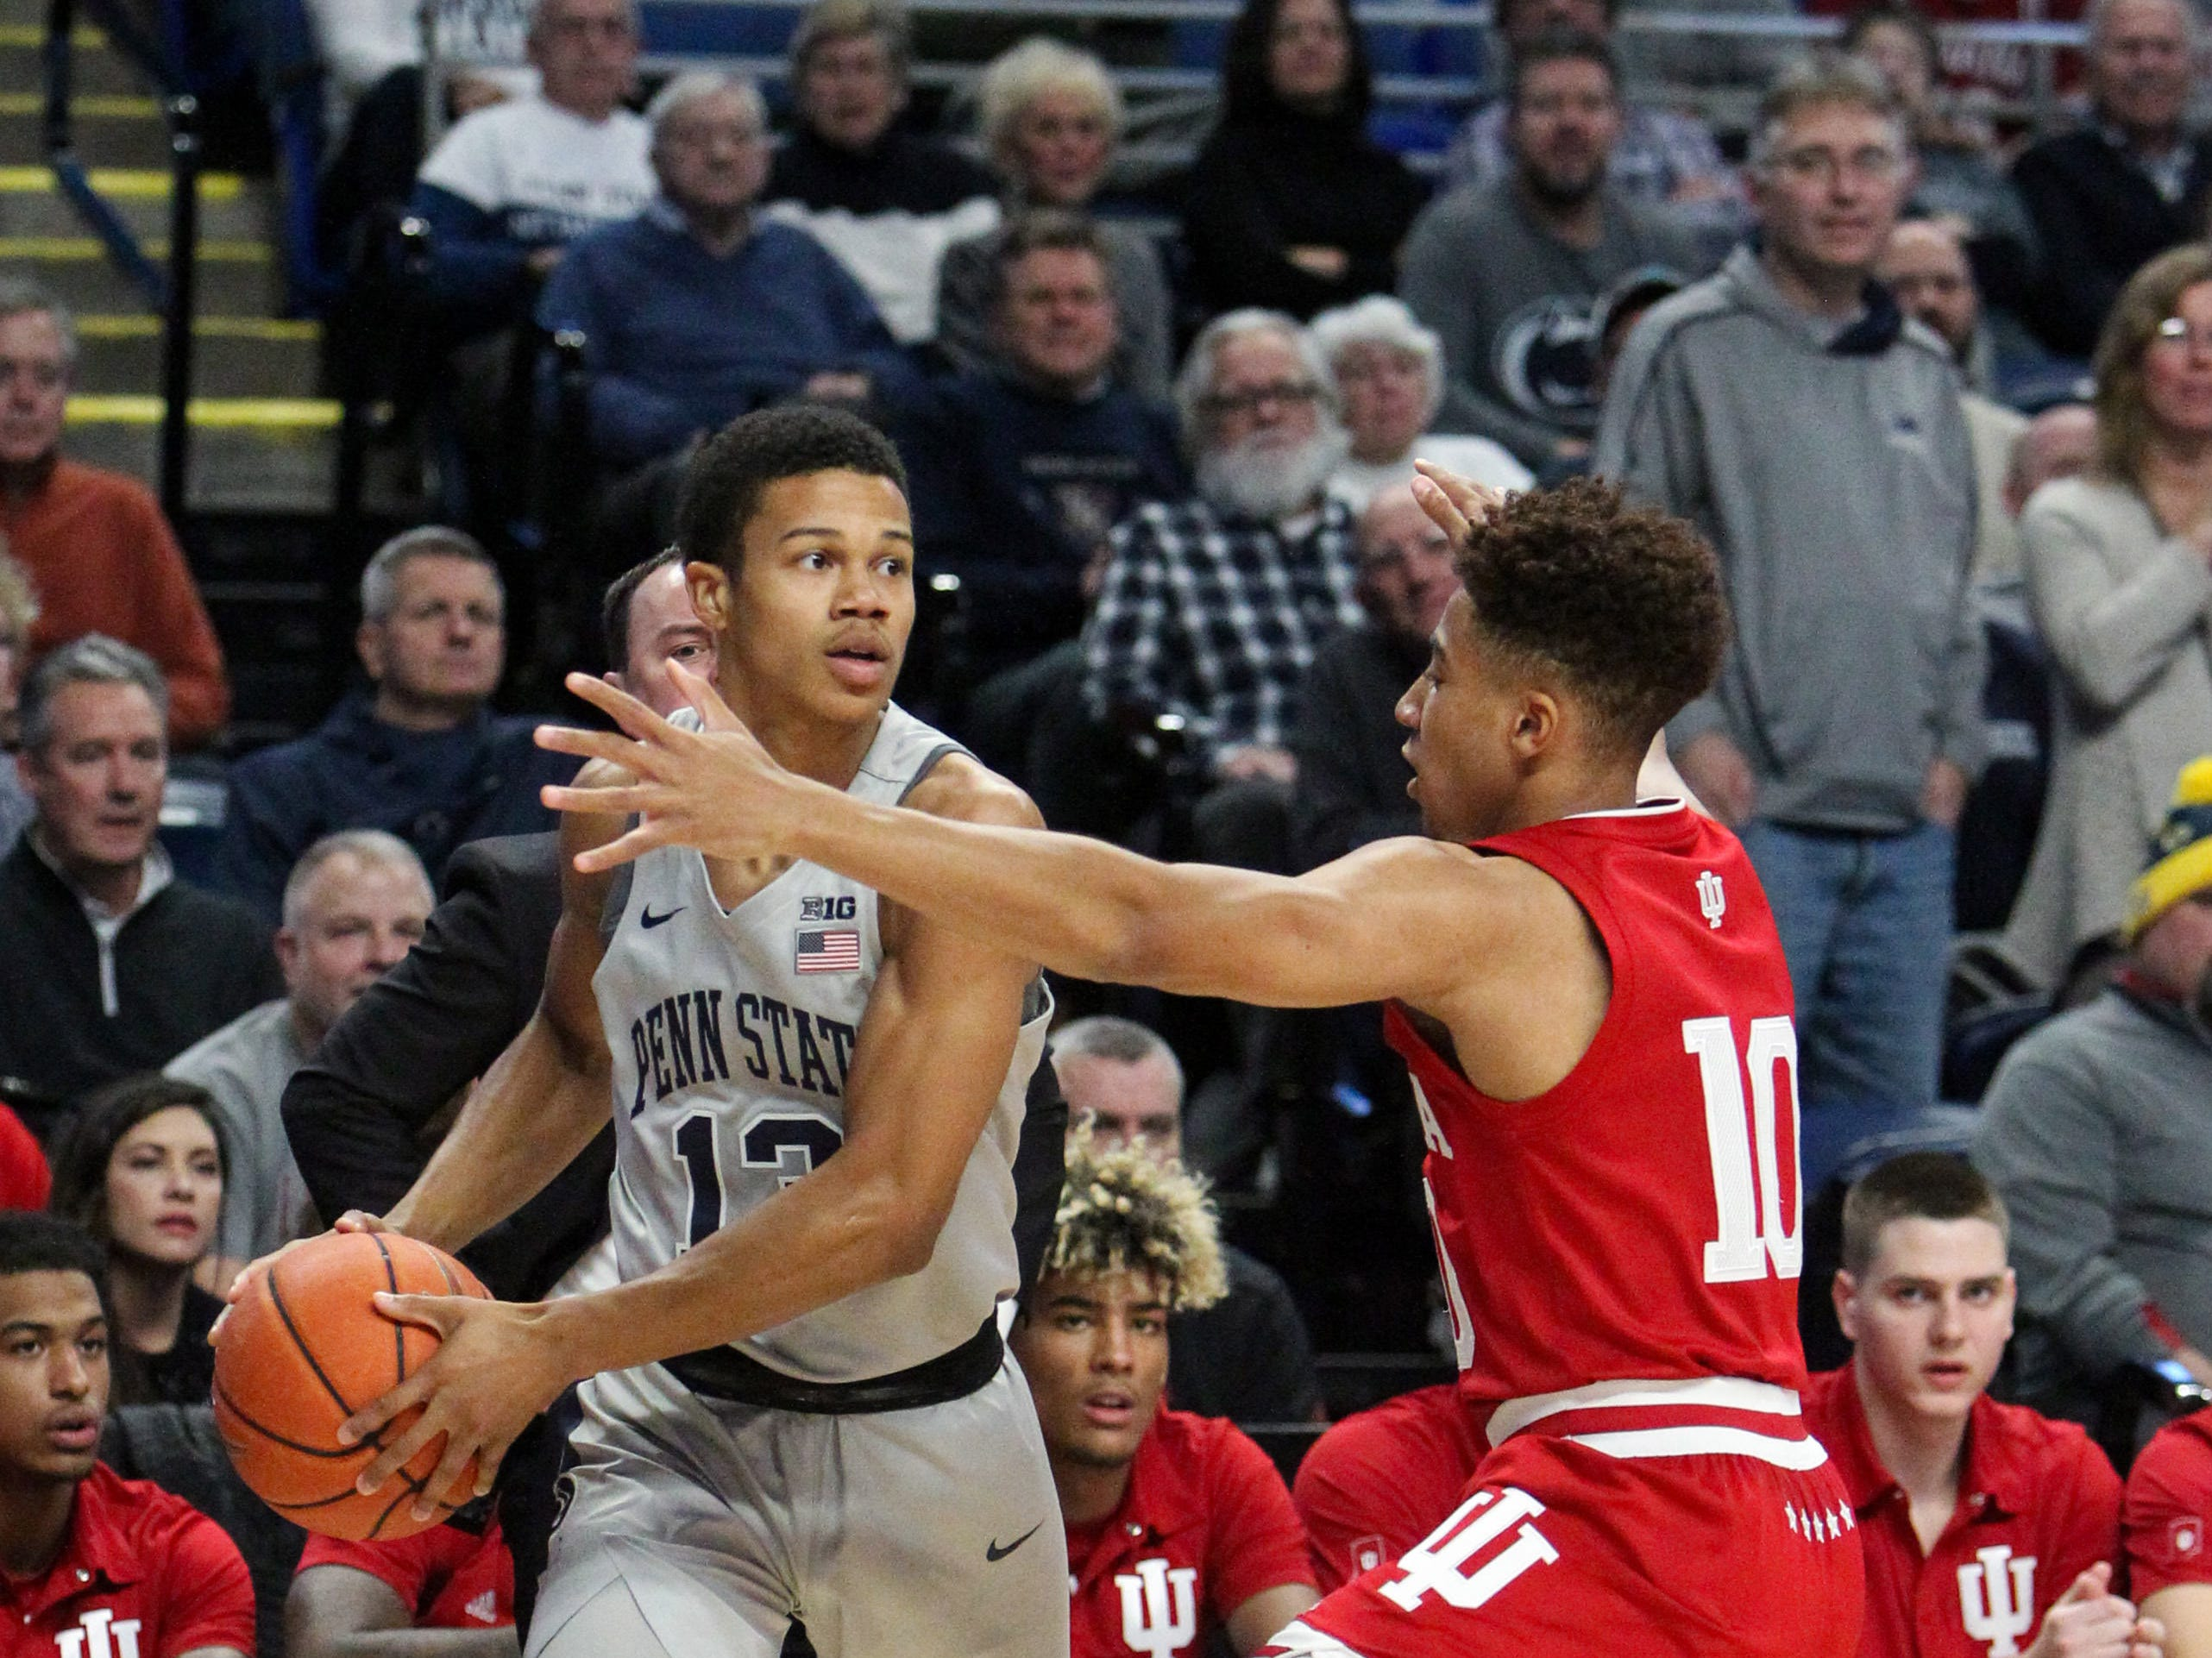 Dec 4, 2018; University Park, PA, USA; Penn State Nittany Lions guard Rasir Bolton (13) controls the ball as Indiana Hoosiers guard Rob Phinisee (10) defends during the first half at Bryce Jordan Center. Mandatory Credit: Matthew O'Haren-USA TODAY Sports